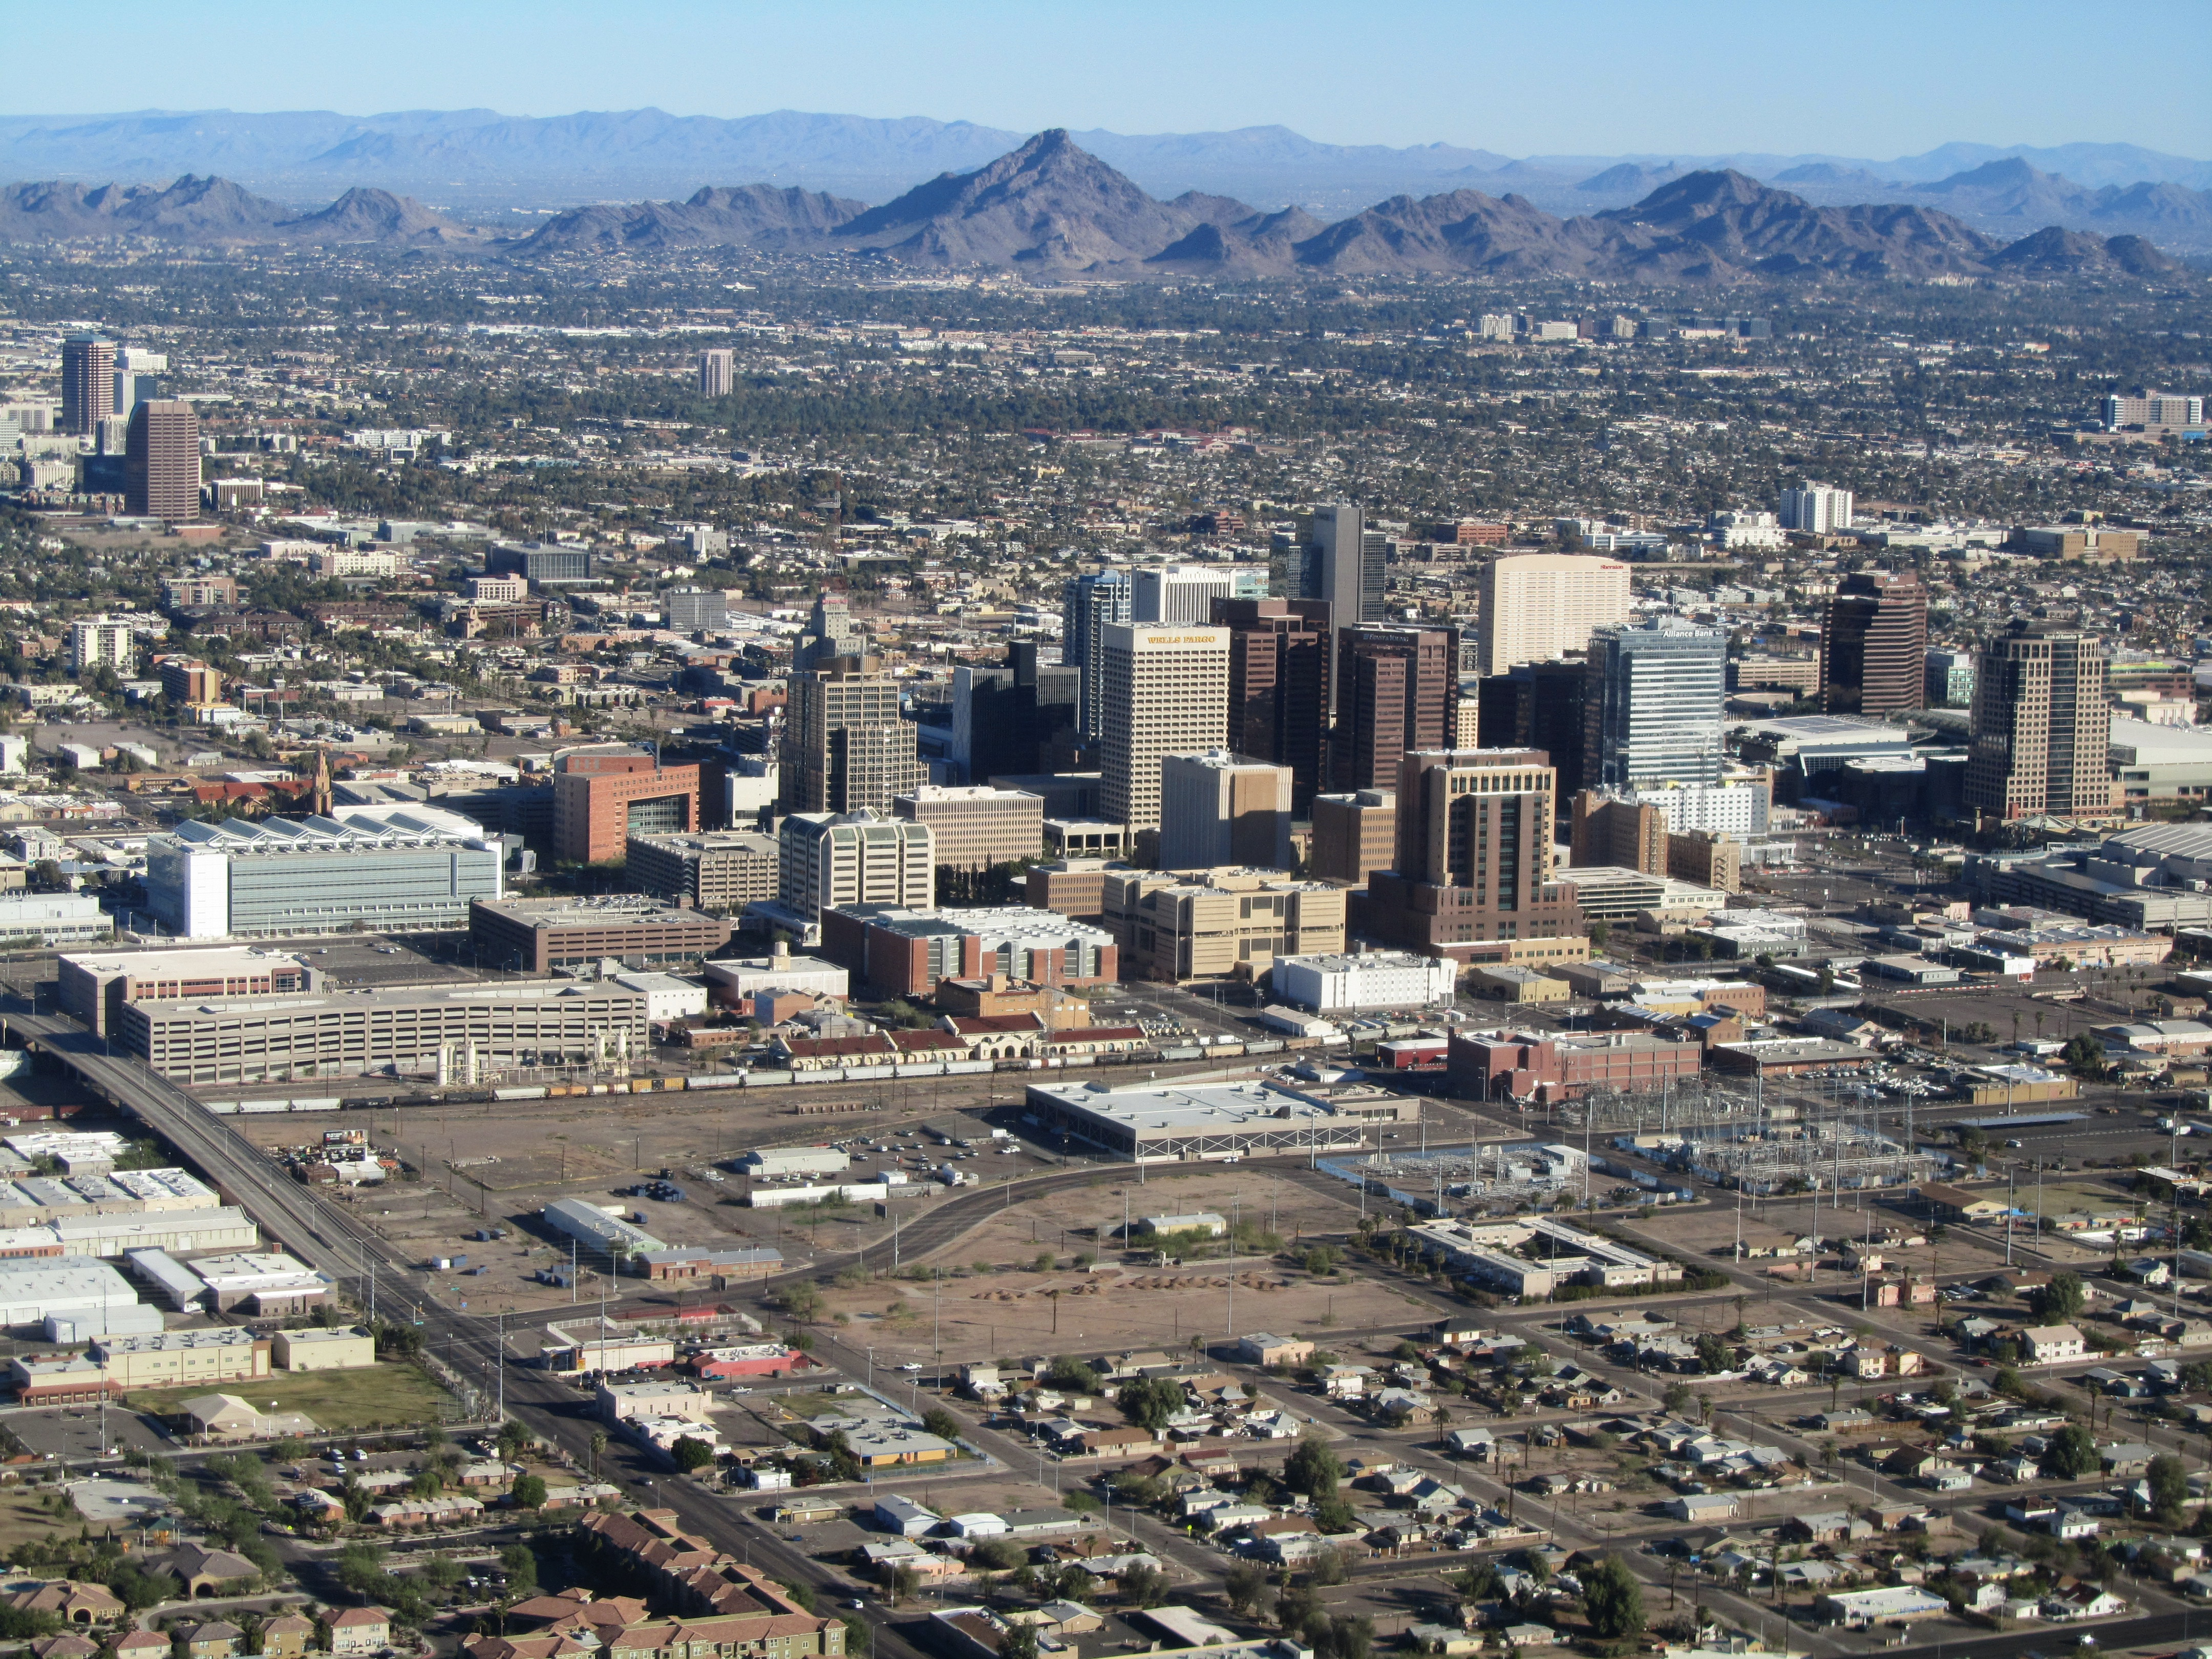 photo taken from an aircraft showing the tall buildings of downtown phoenix with the mountains